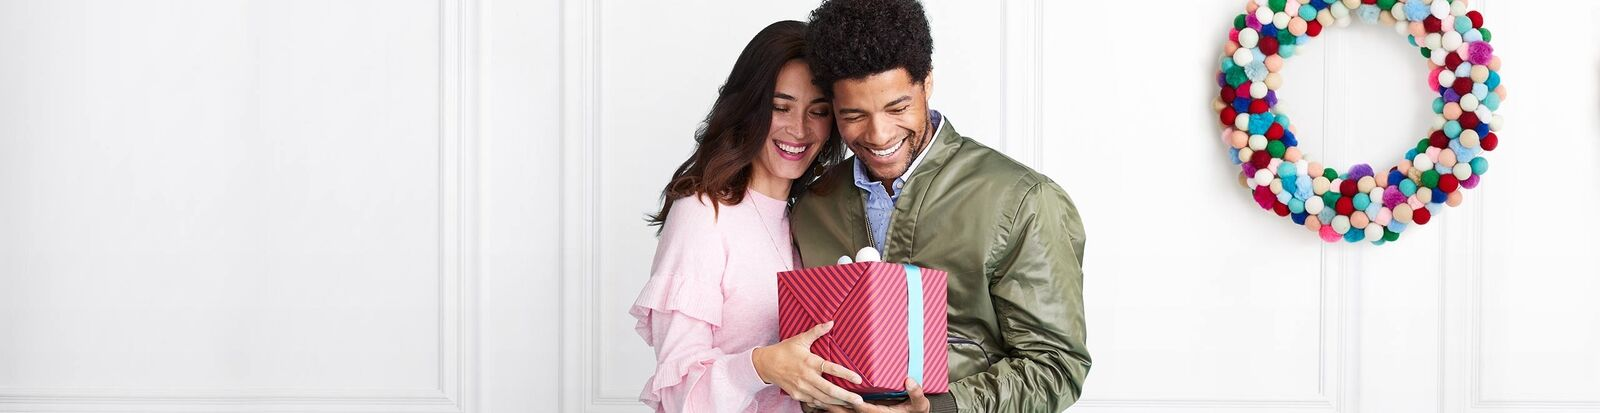 Show them you know them with just-right gifts.